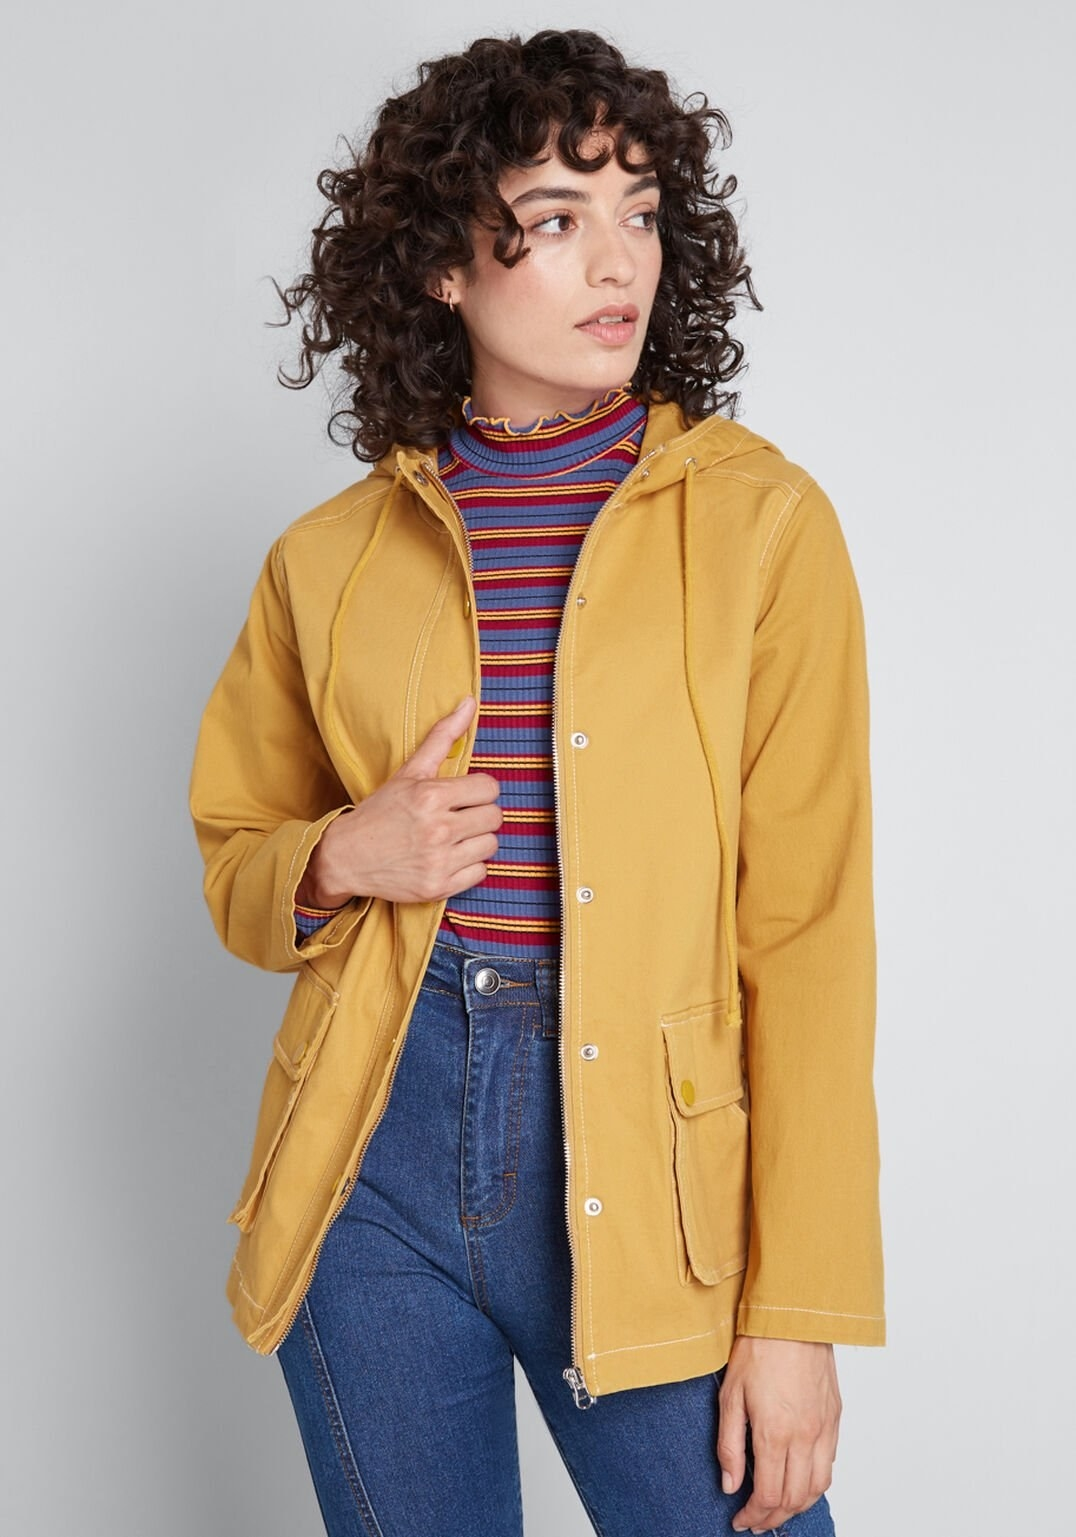 a model in the msutard-colored jacket with utility pockets, a full zipper down the middle, and draw strings hanging from the hood